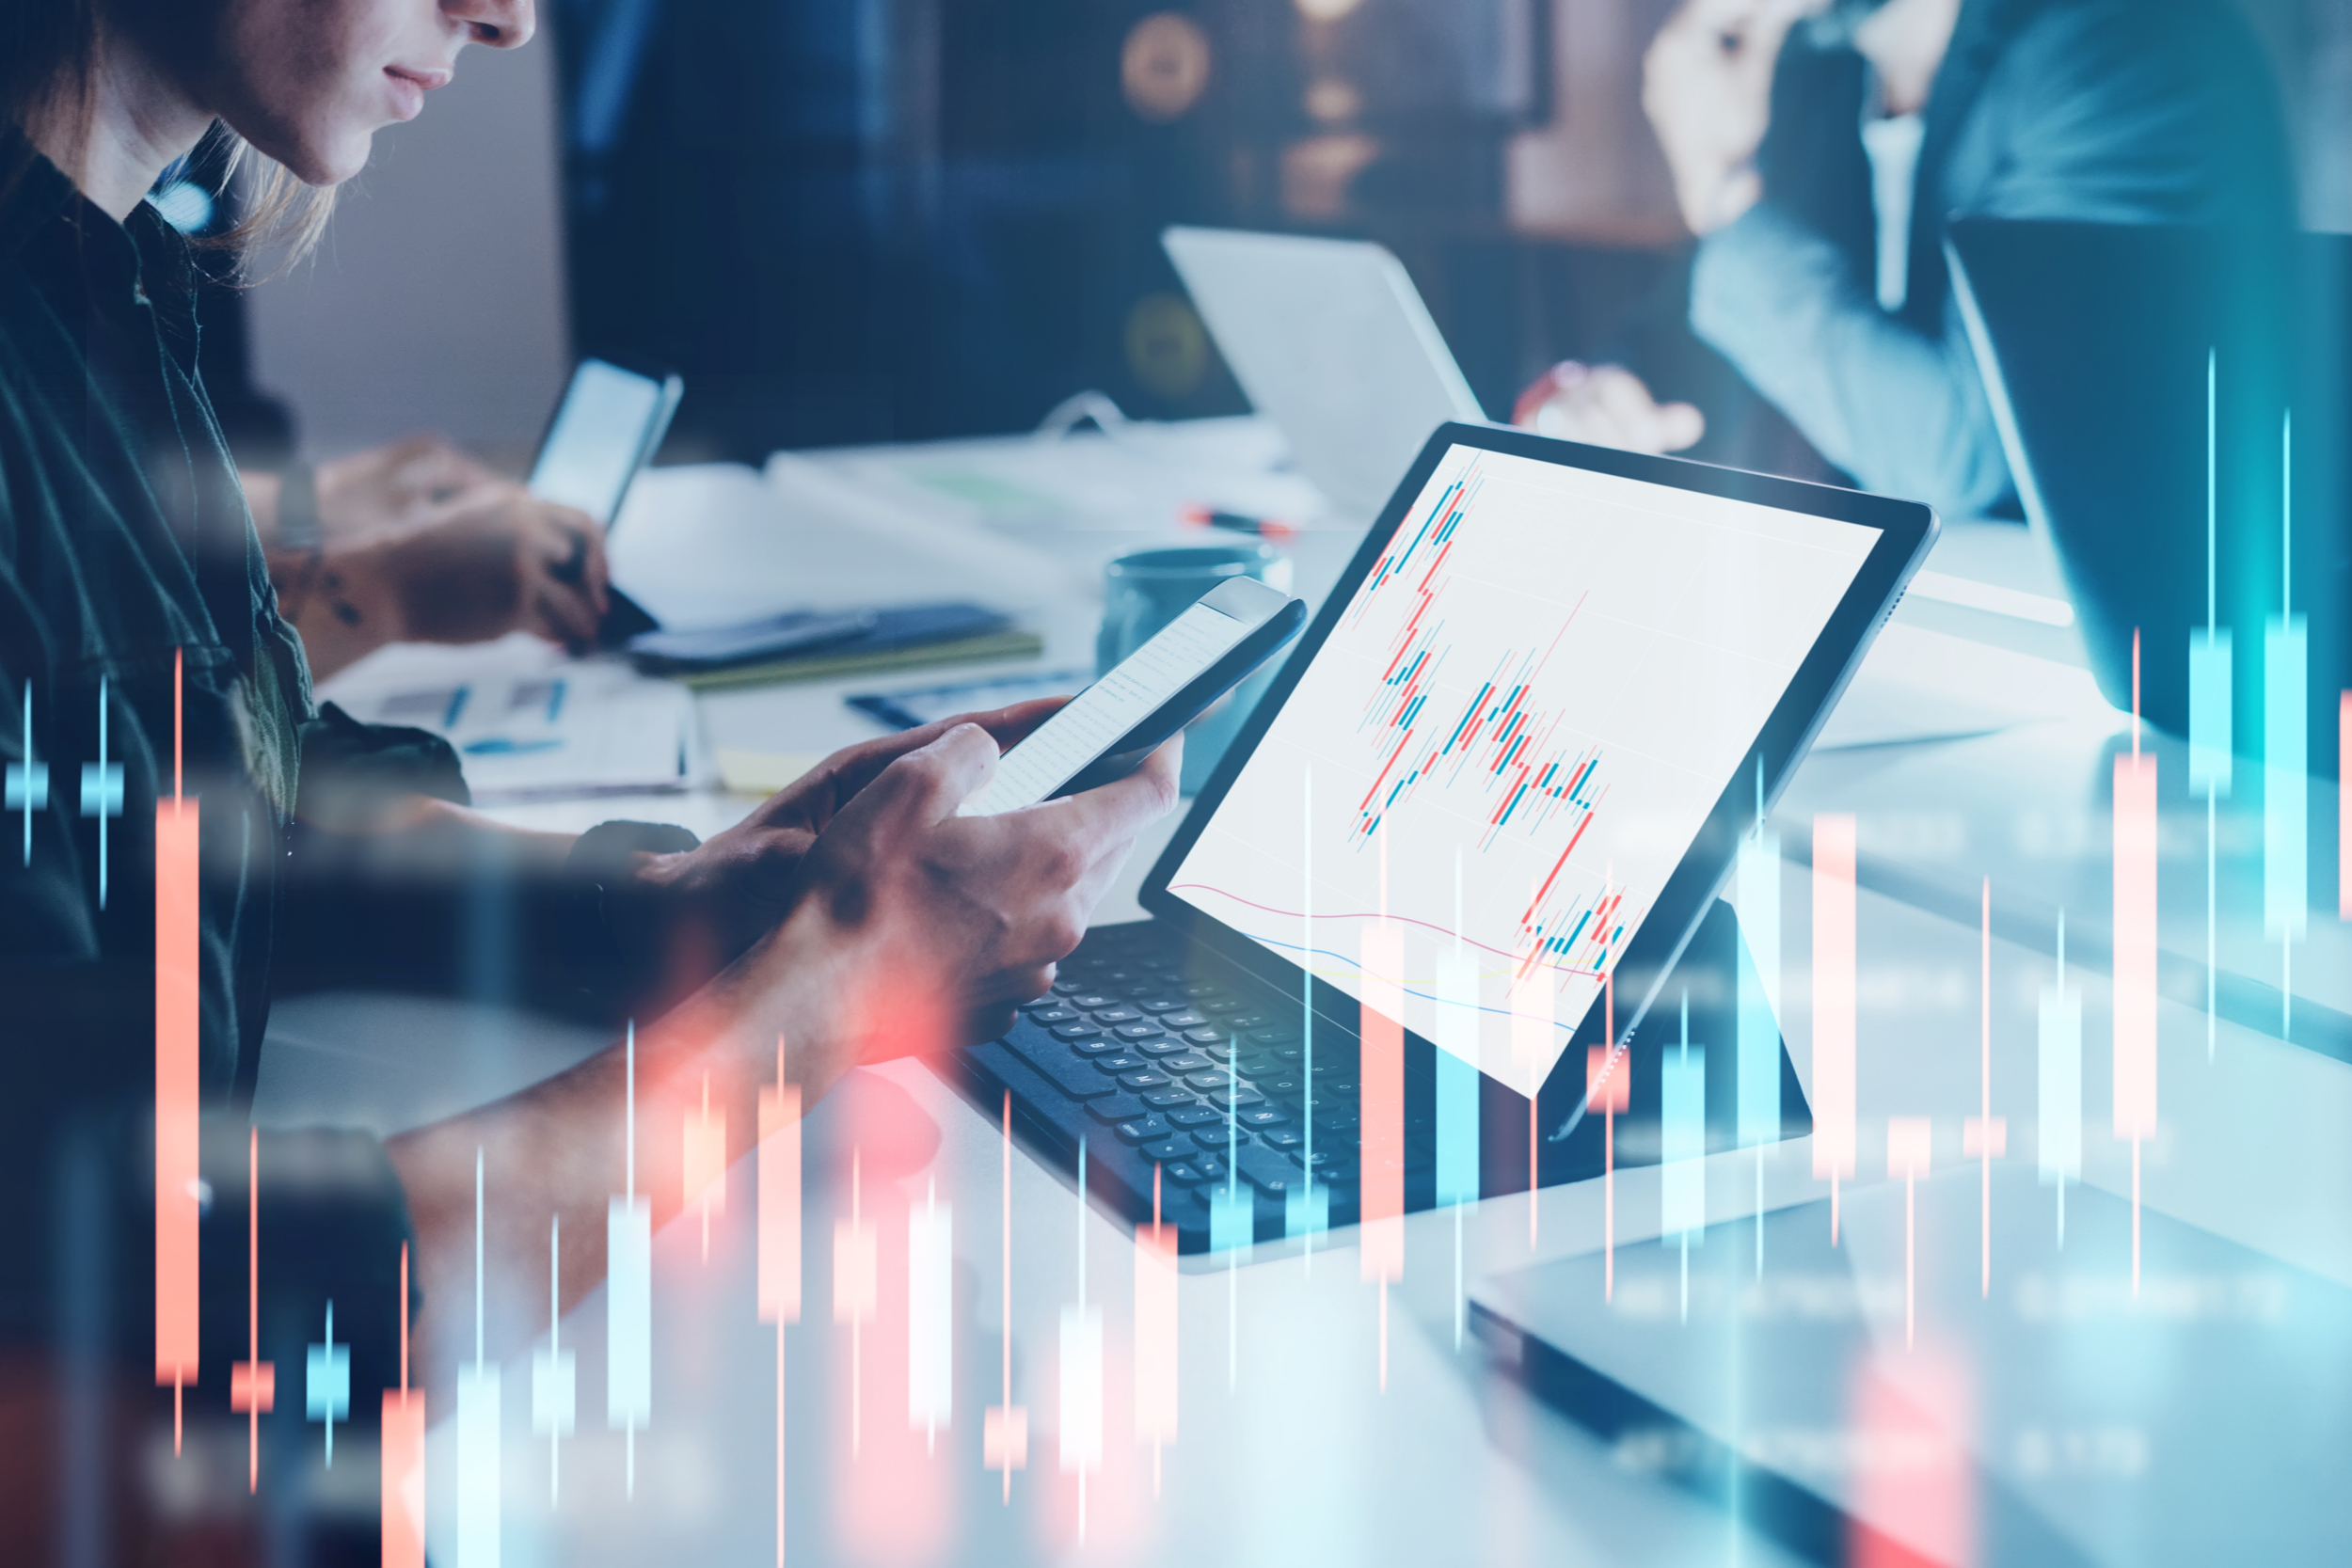 How and why to avoid chasing the latest investment trend